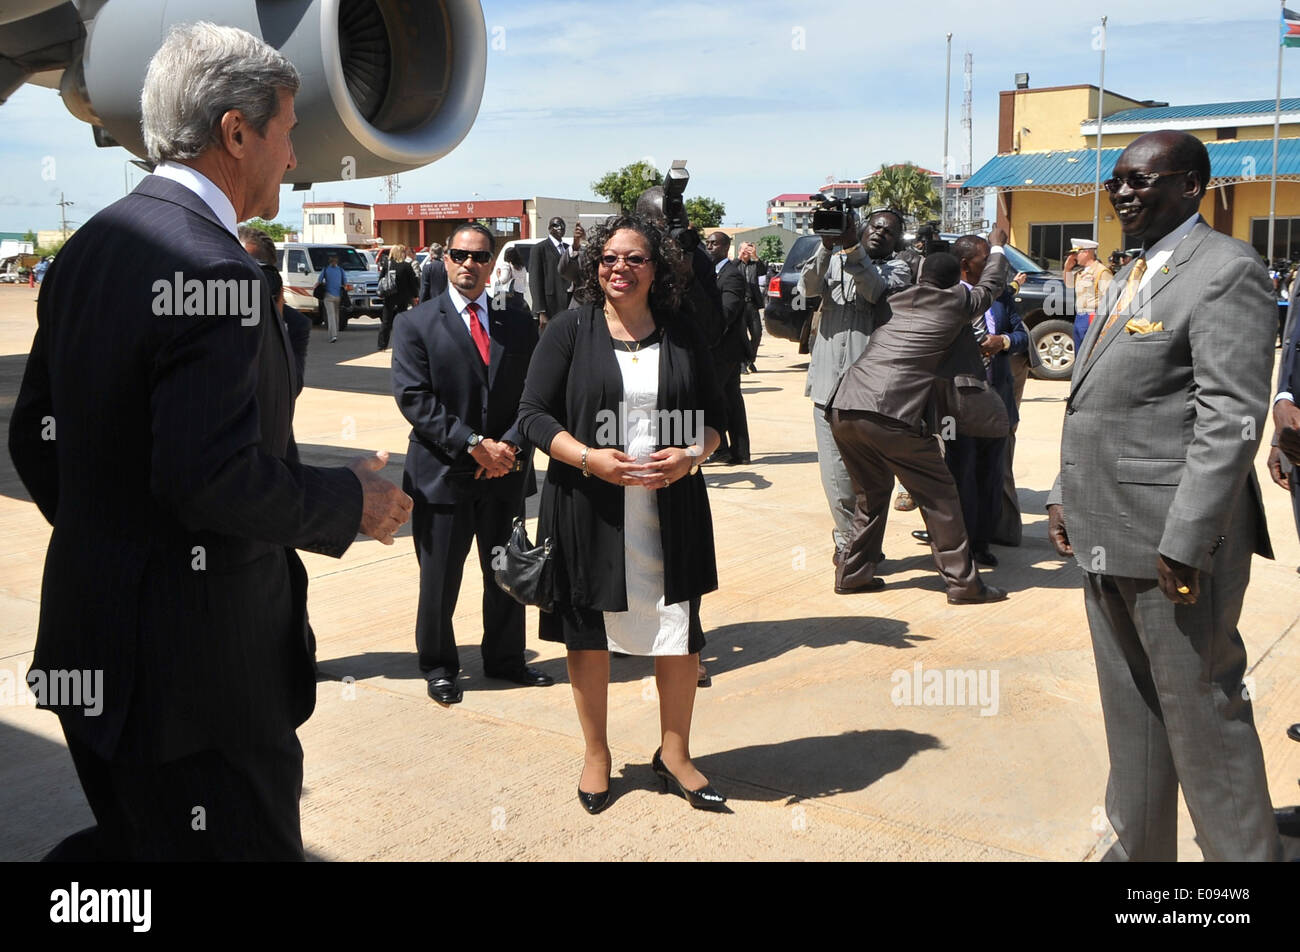 Ambassador Page, South Sudanese Foreign Minister Benjamin Greet Secretary Kerry Upon Arrival in Juba - Stock Image